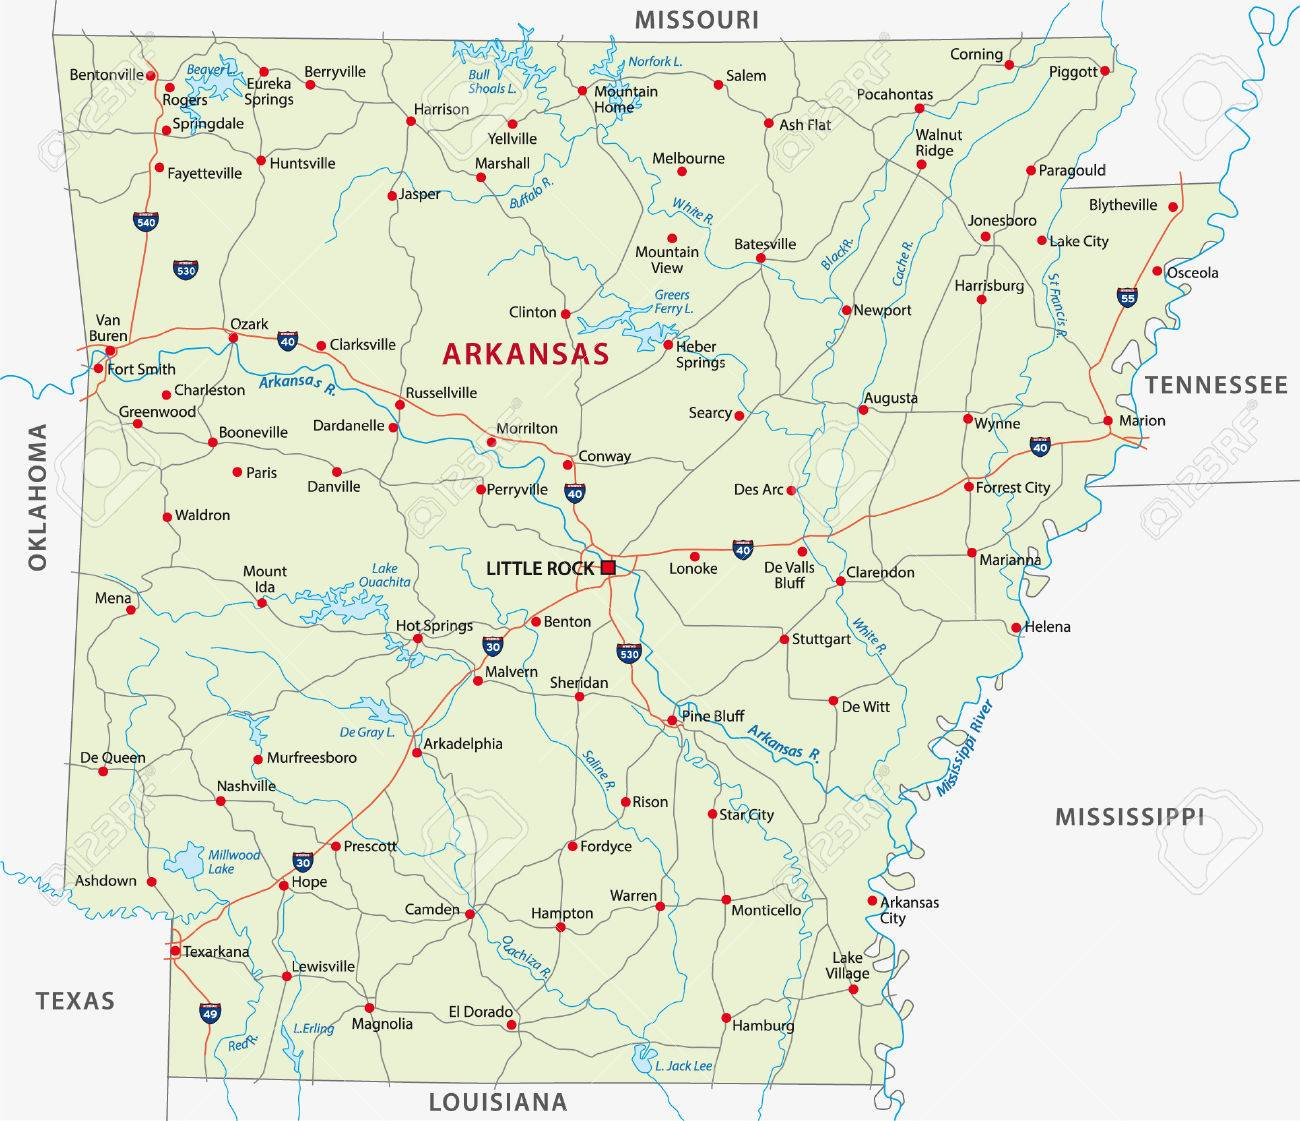 arkansas road map on road map of tennessee, map of tennessee cities, map of tn and ms, map of southwest tennessee, map of crossett arkansas, map of mississippi and alabama, map kentucky and tennessee, map of ar, map mississippi and tennessee, map of arkansas tennessee-kentucky, map louisiana to tennessee, map of western tennessee, map of northeast arkansas,